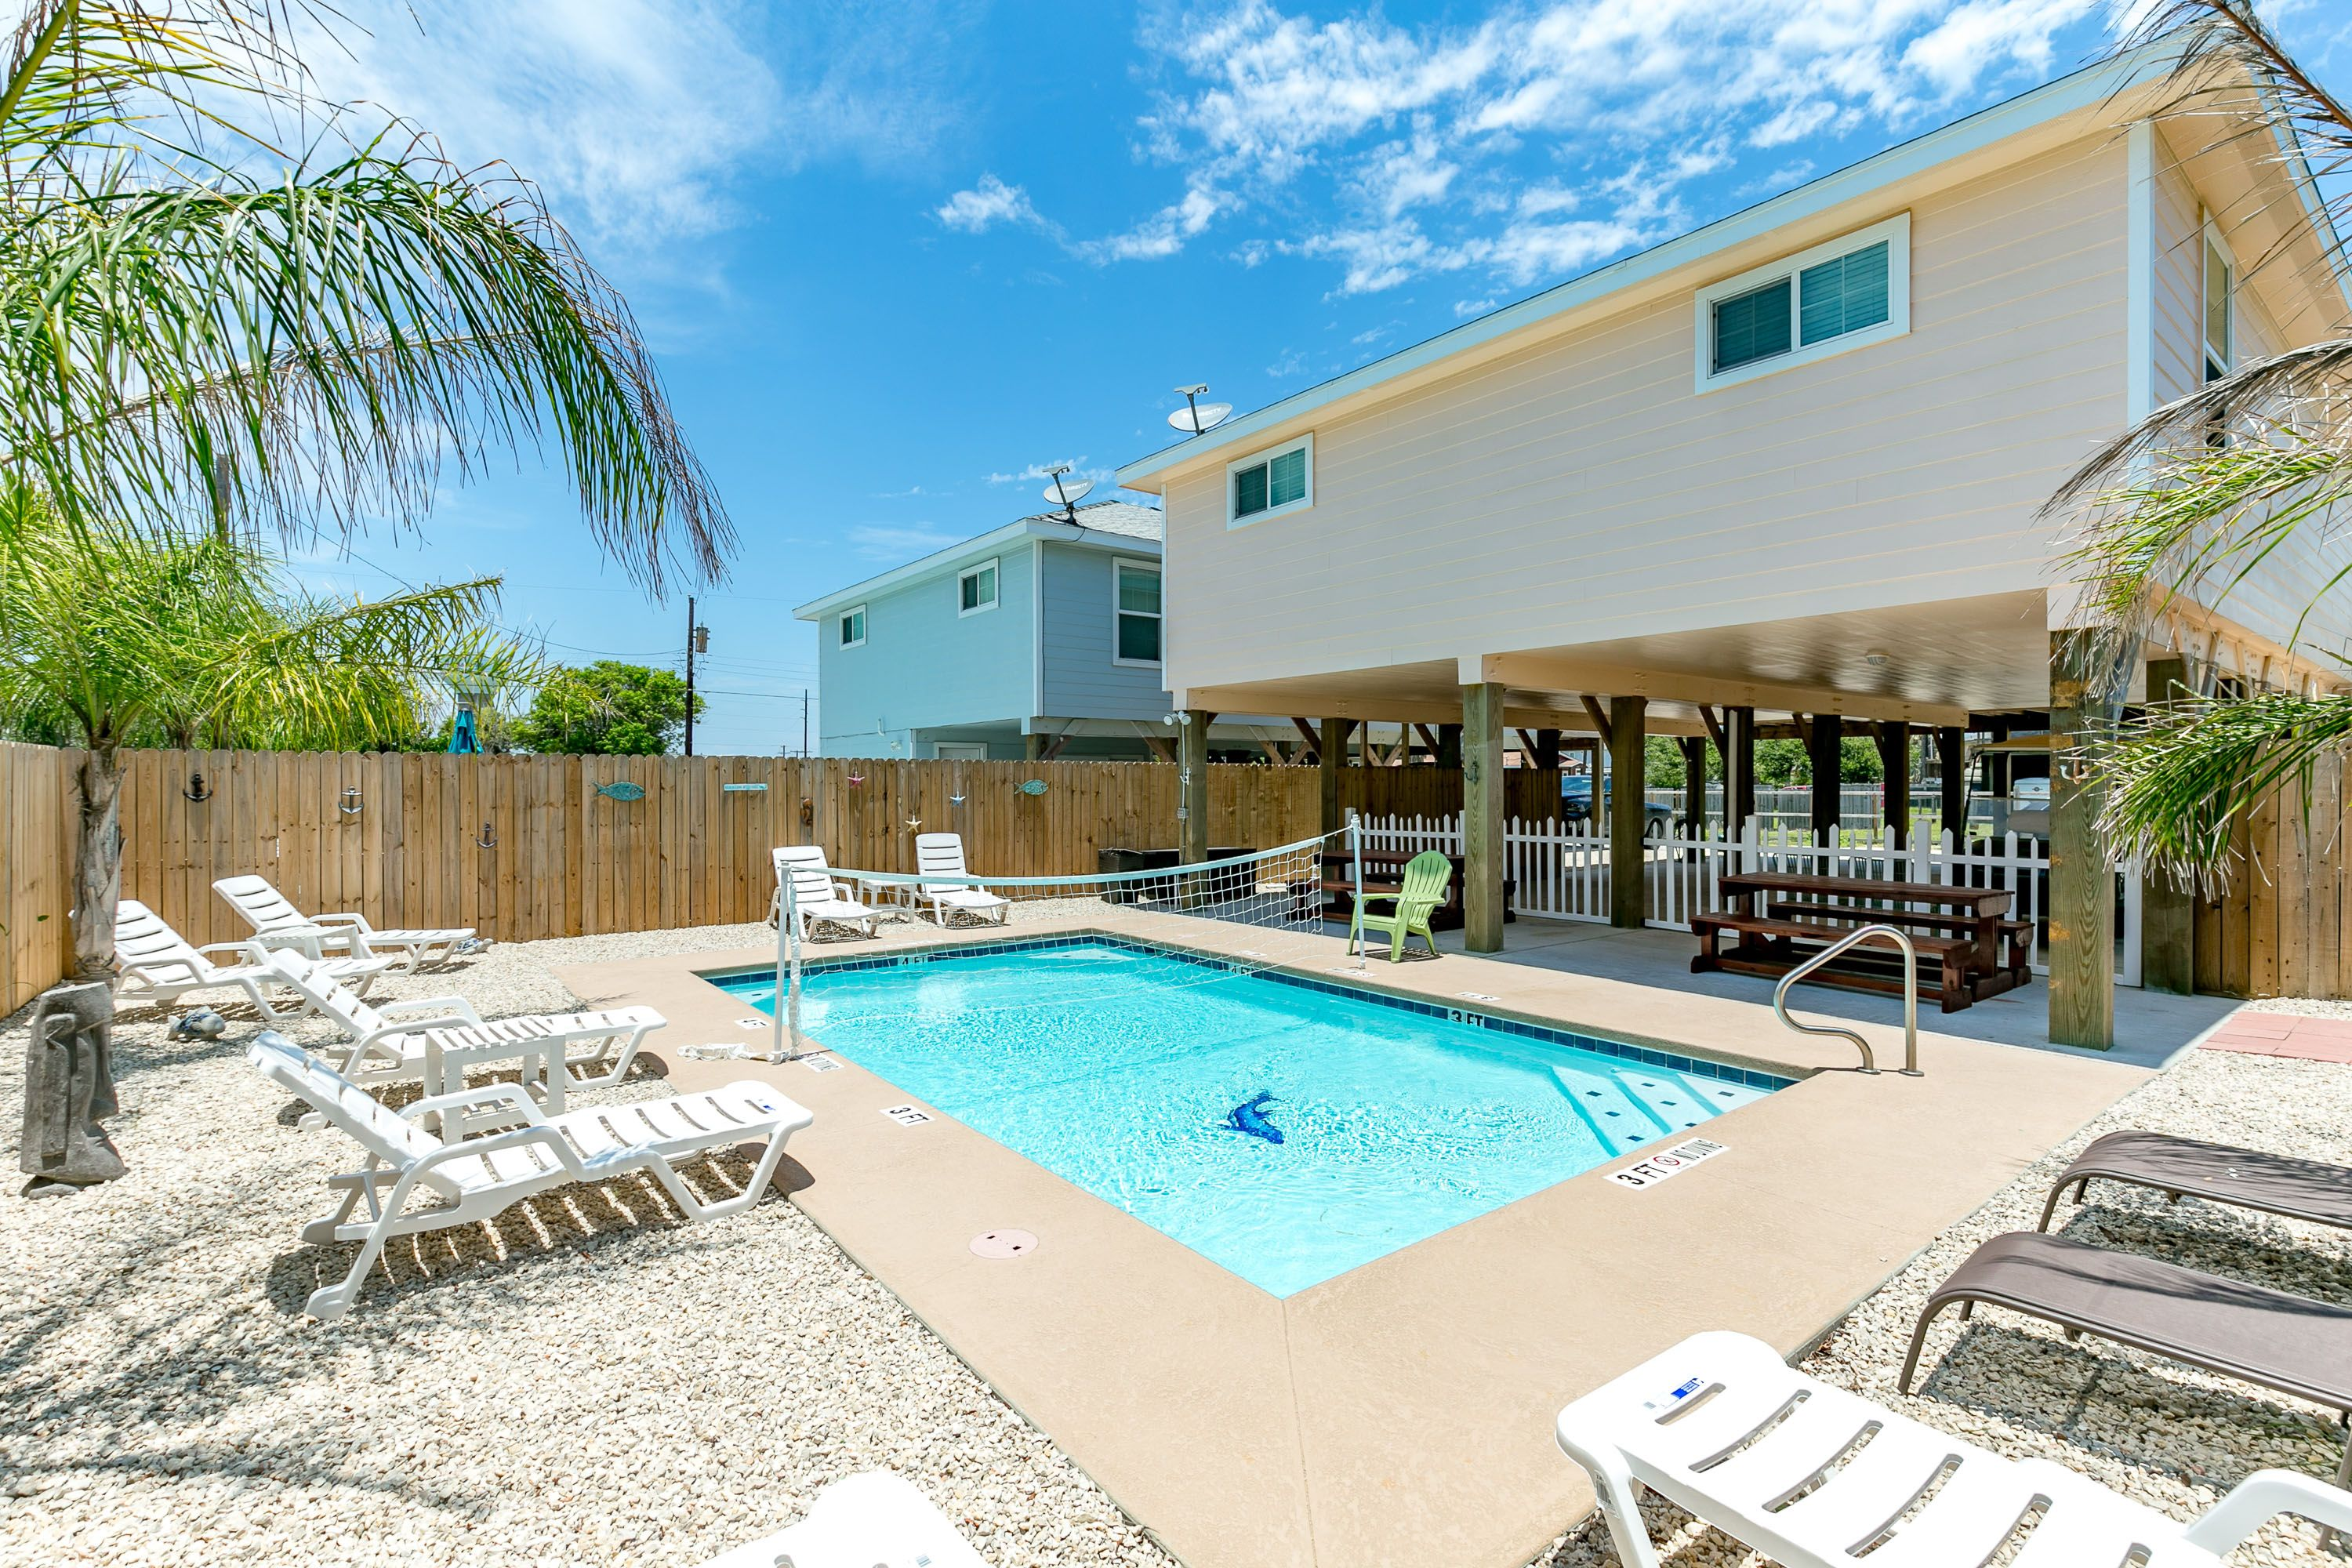 Sandy Bottoms EL Silver Sands Vacation Rentals - Beautiful madness 10 extraordinary bedrooms near the swimming pool